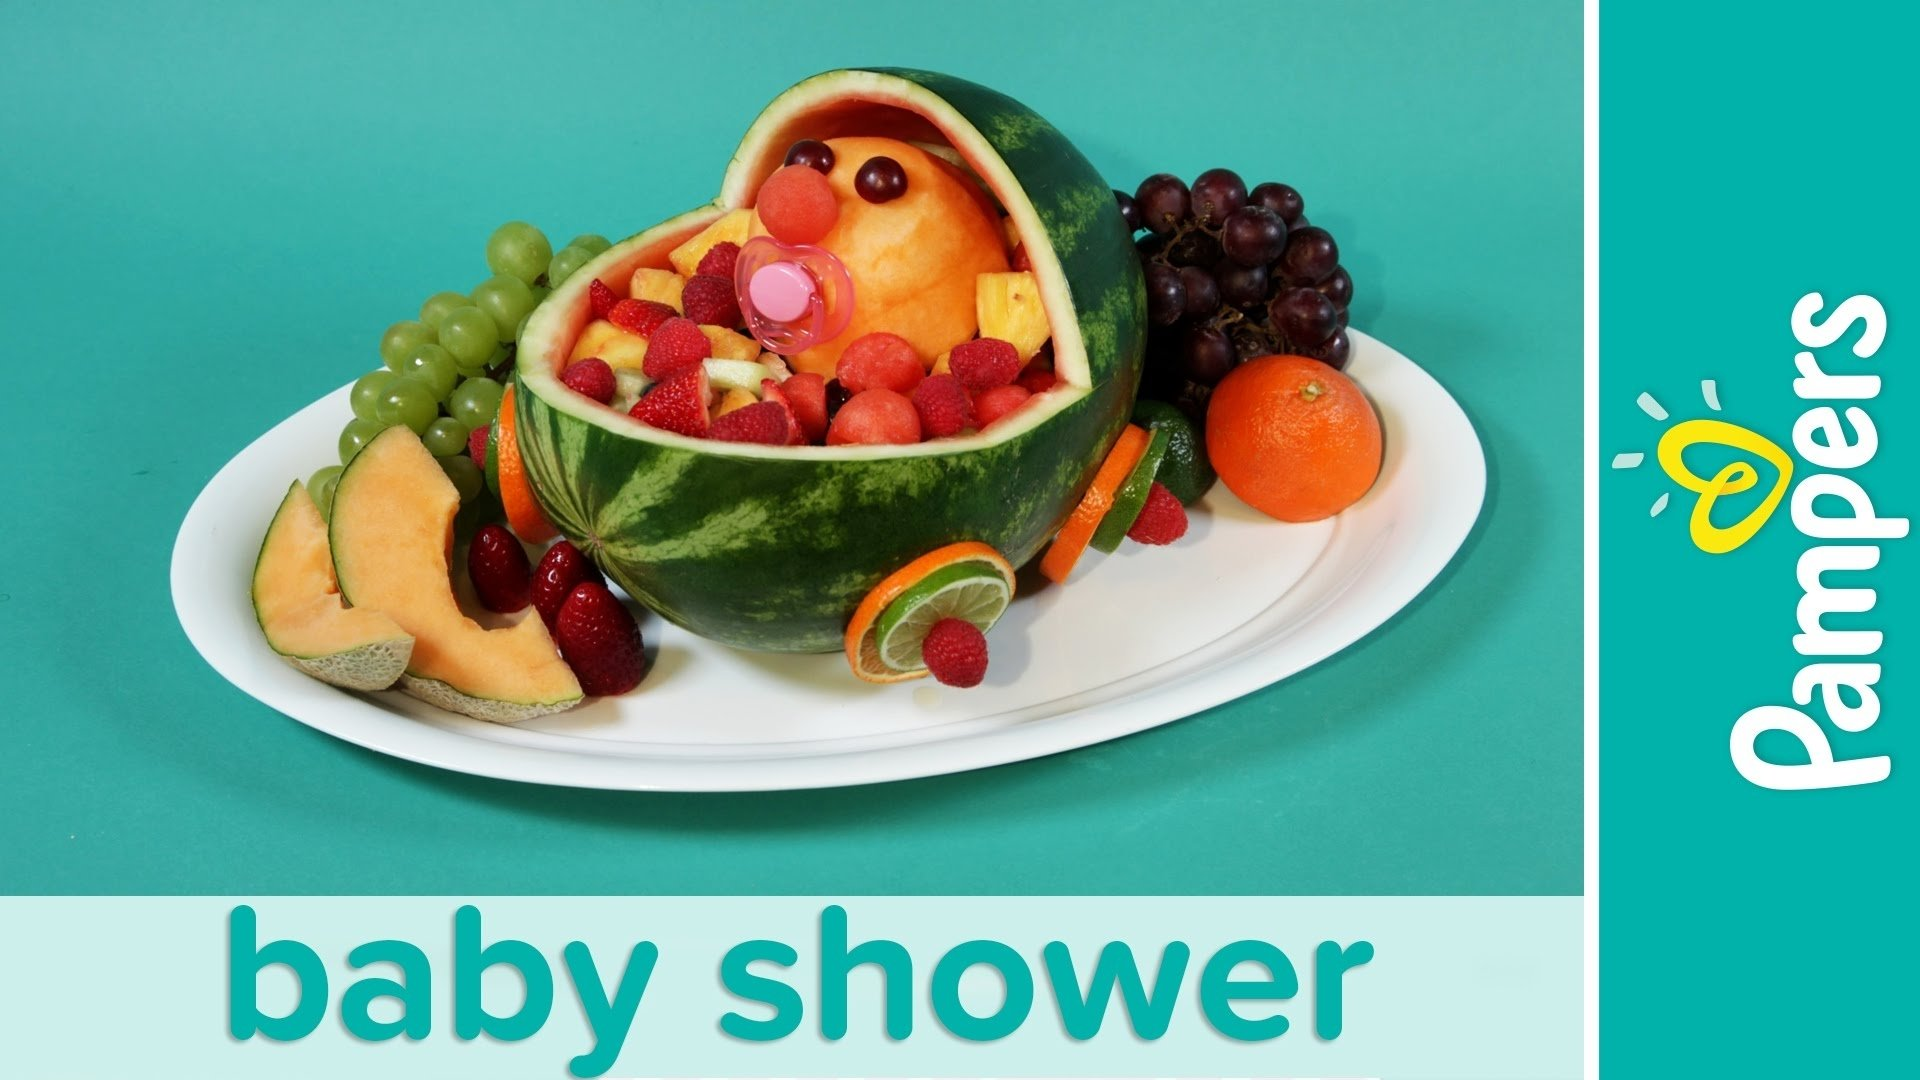 10 Beautiful Fruit Ideas For Baby Shower baby shower ideas stroller fresh fruit salad recipe pampers youtube 2020